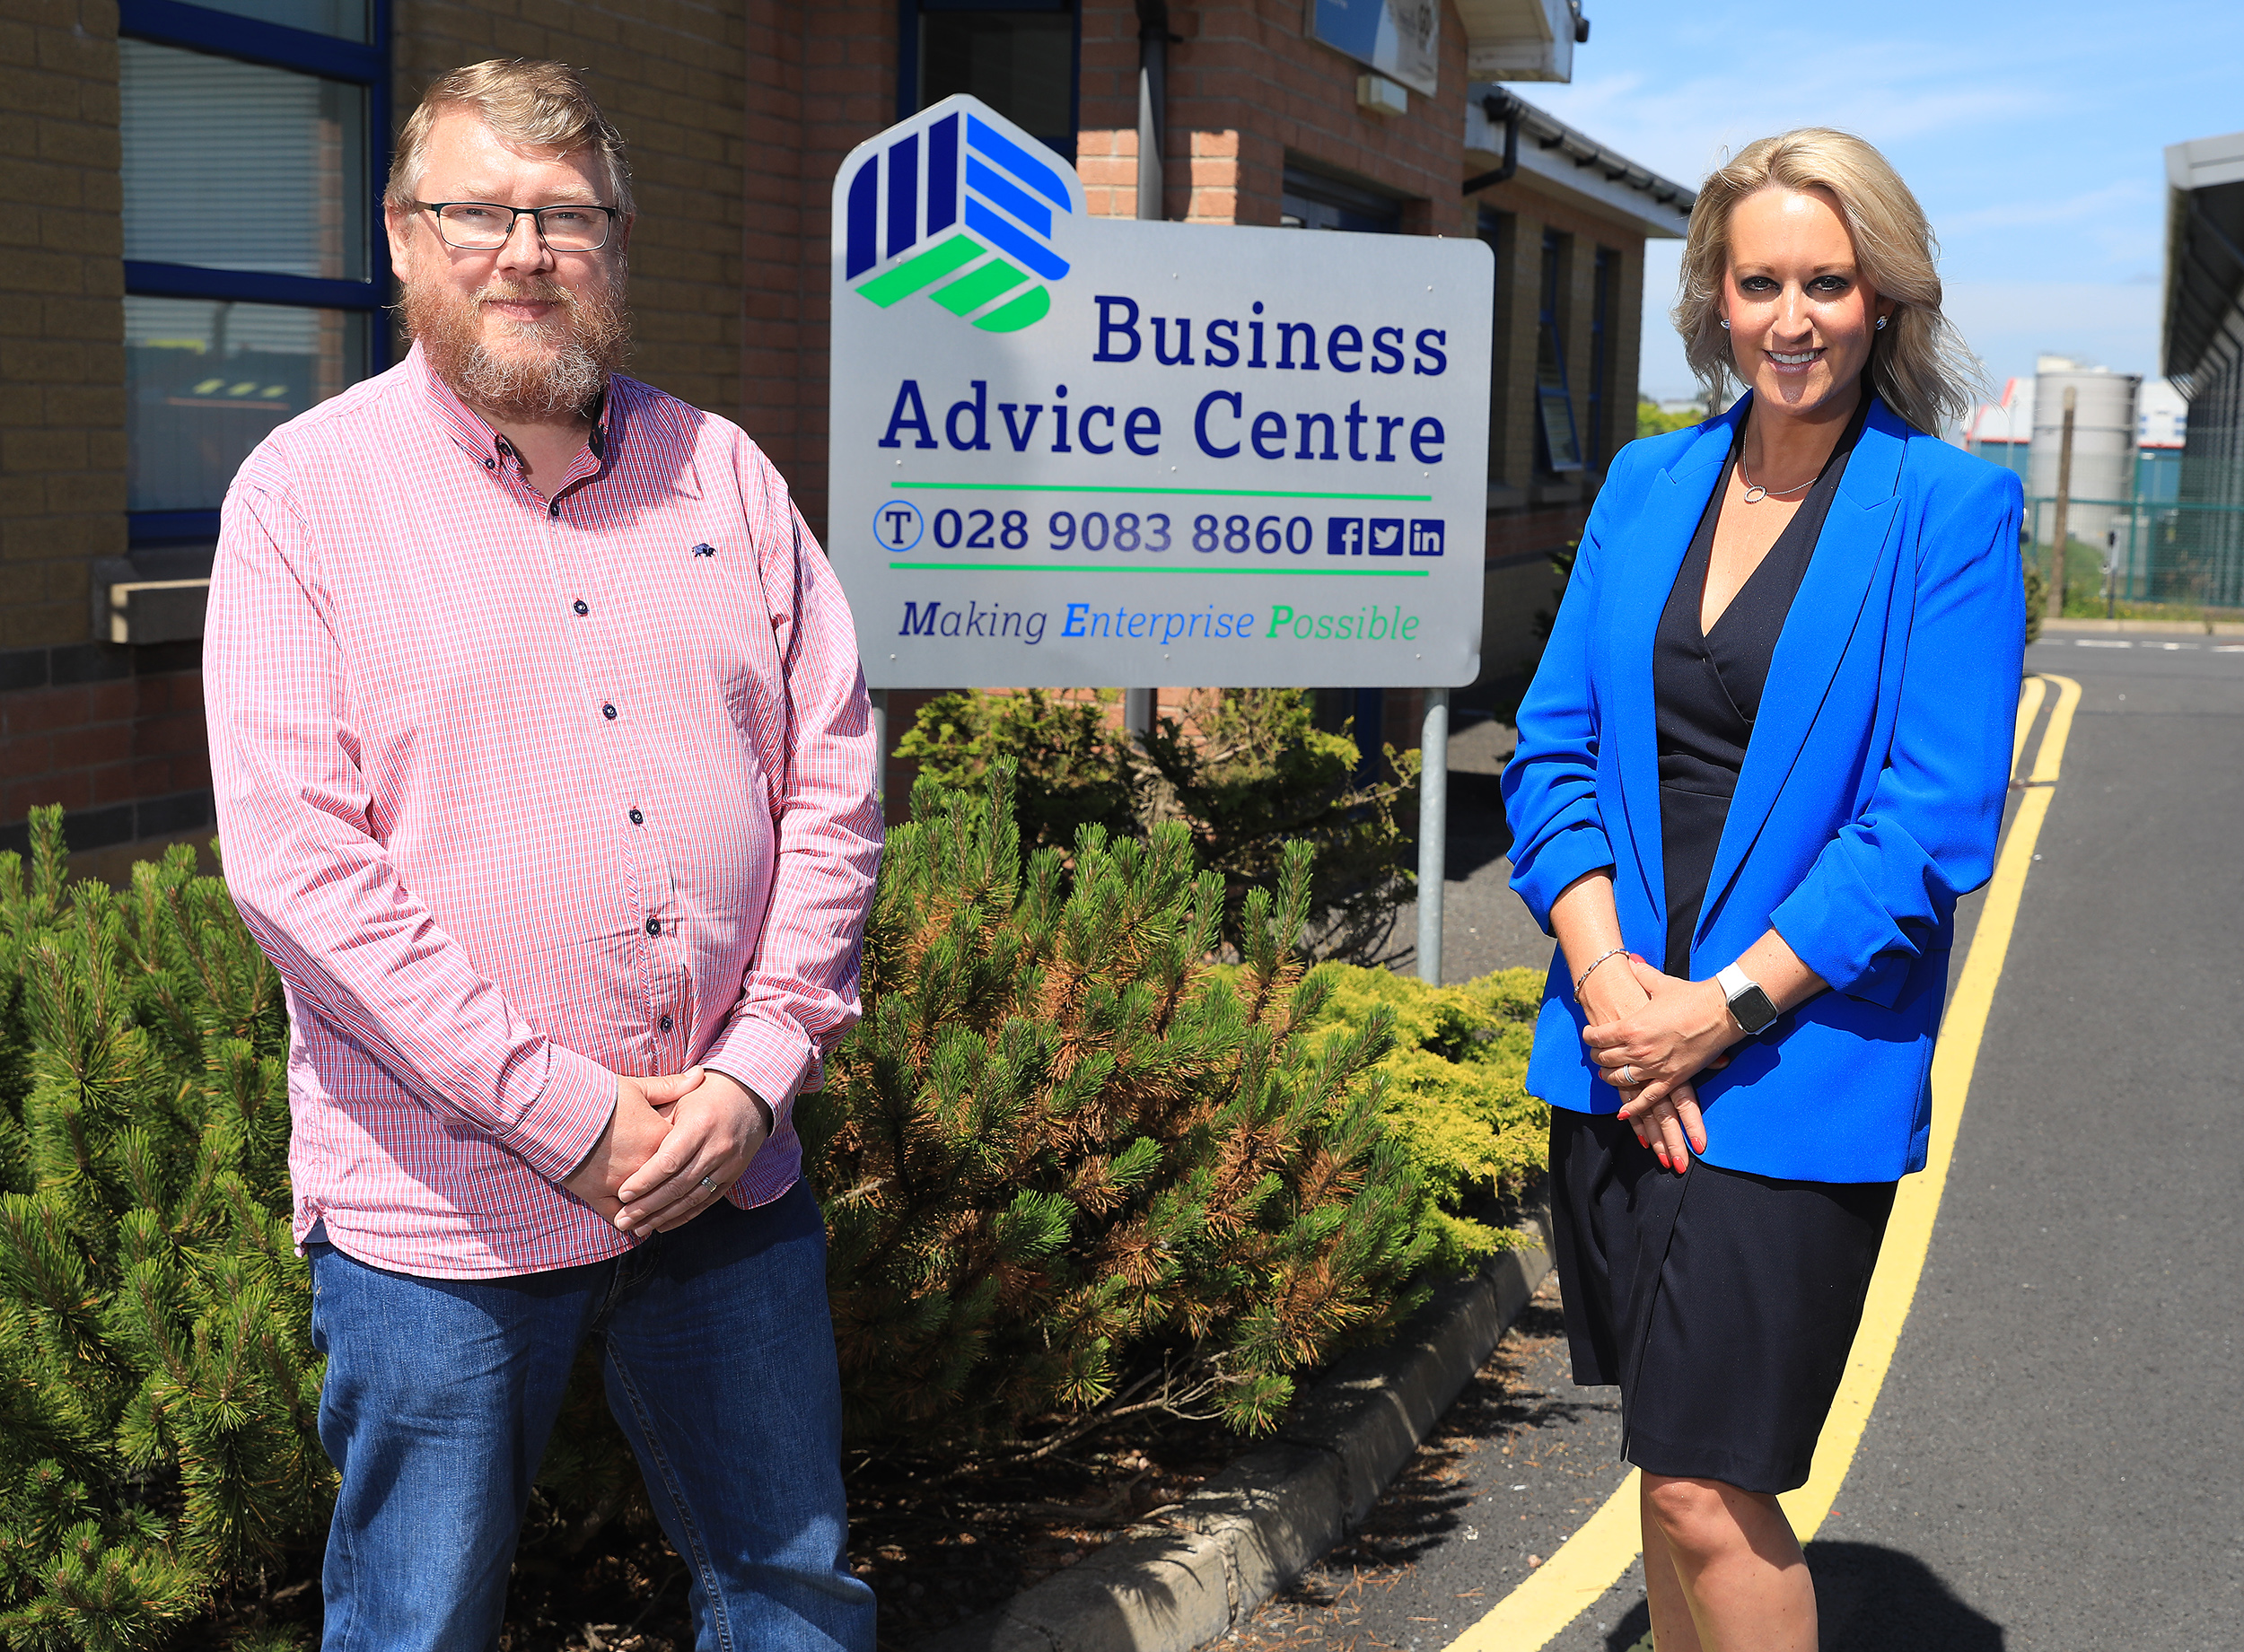 Chairman of Mallusk Enterprise Park Iain Patterson with Chief Executive of the local enterprise agency in antrim and newtownabbey borough council Emma Garrett pictured outside the business advice centre in Mallusk